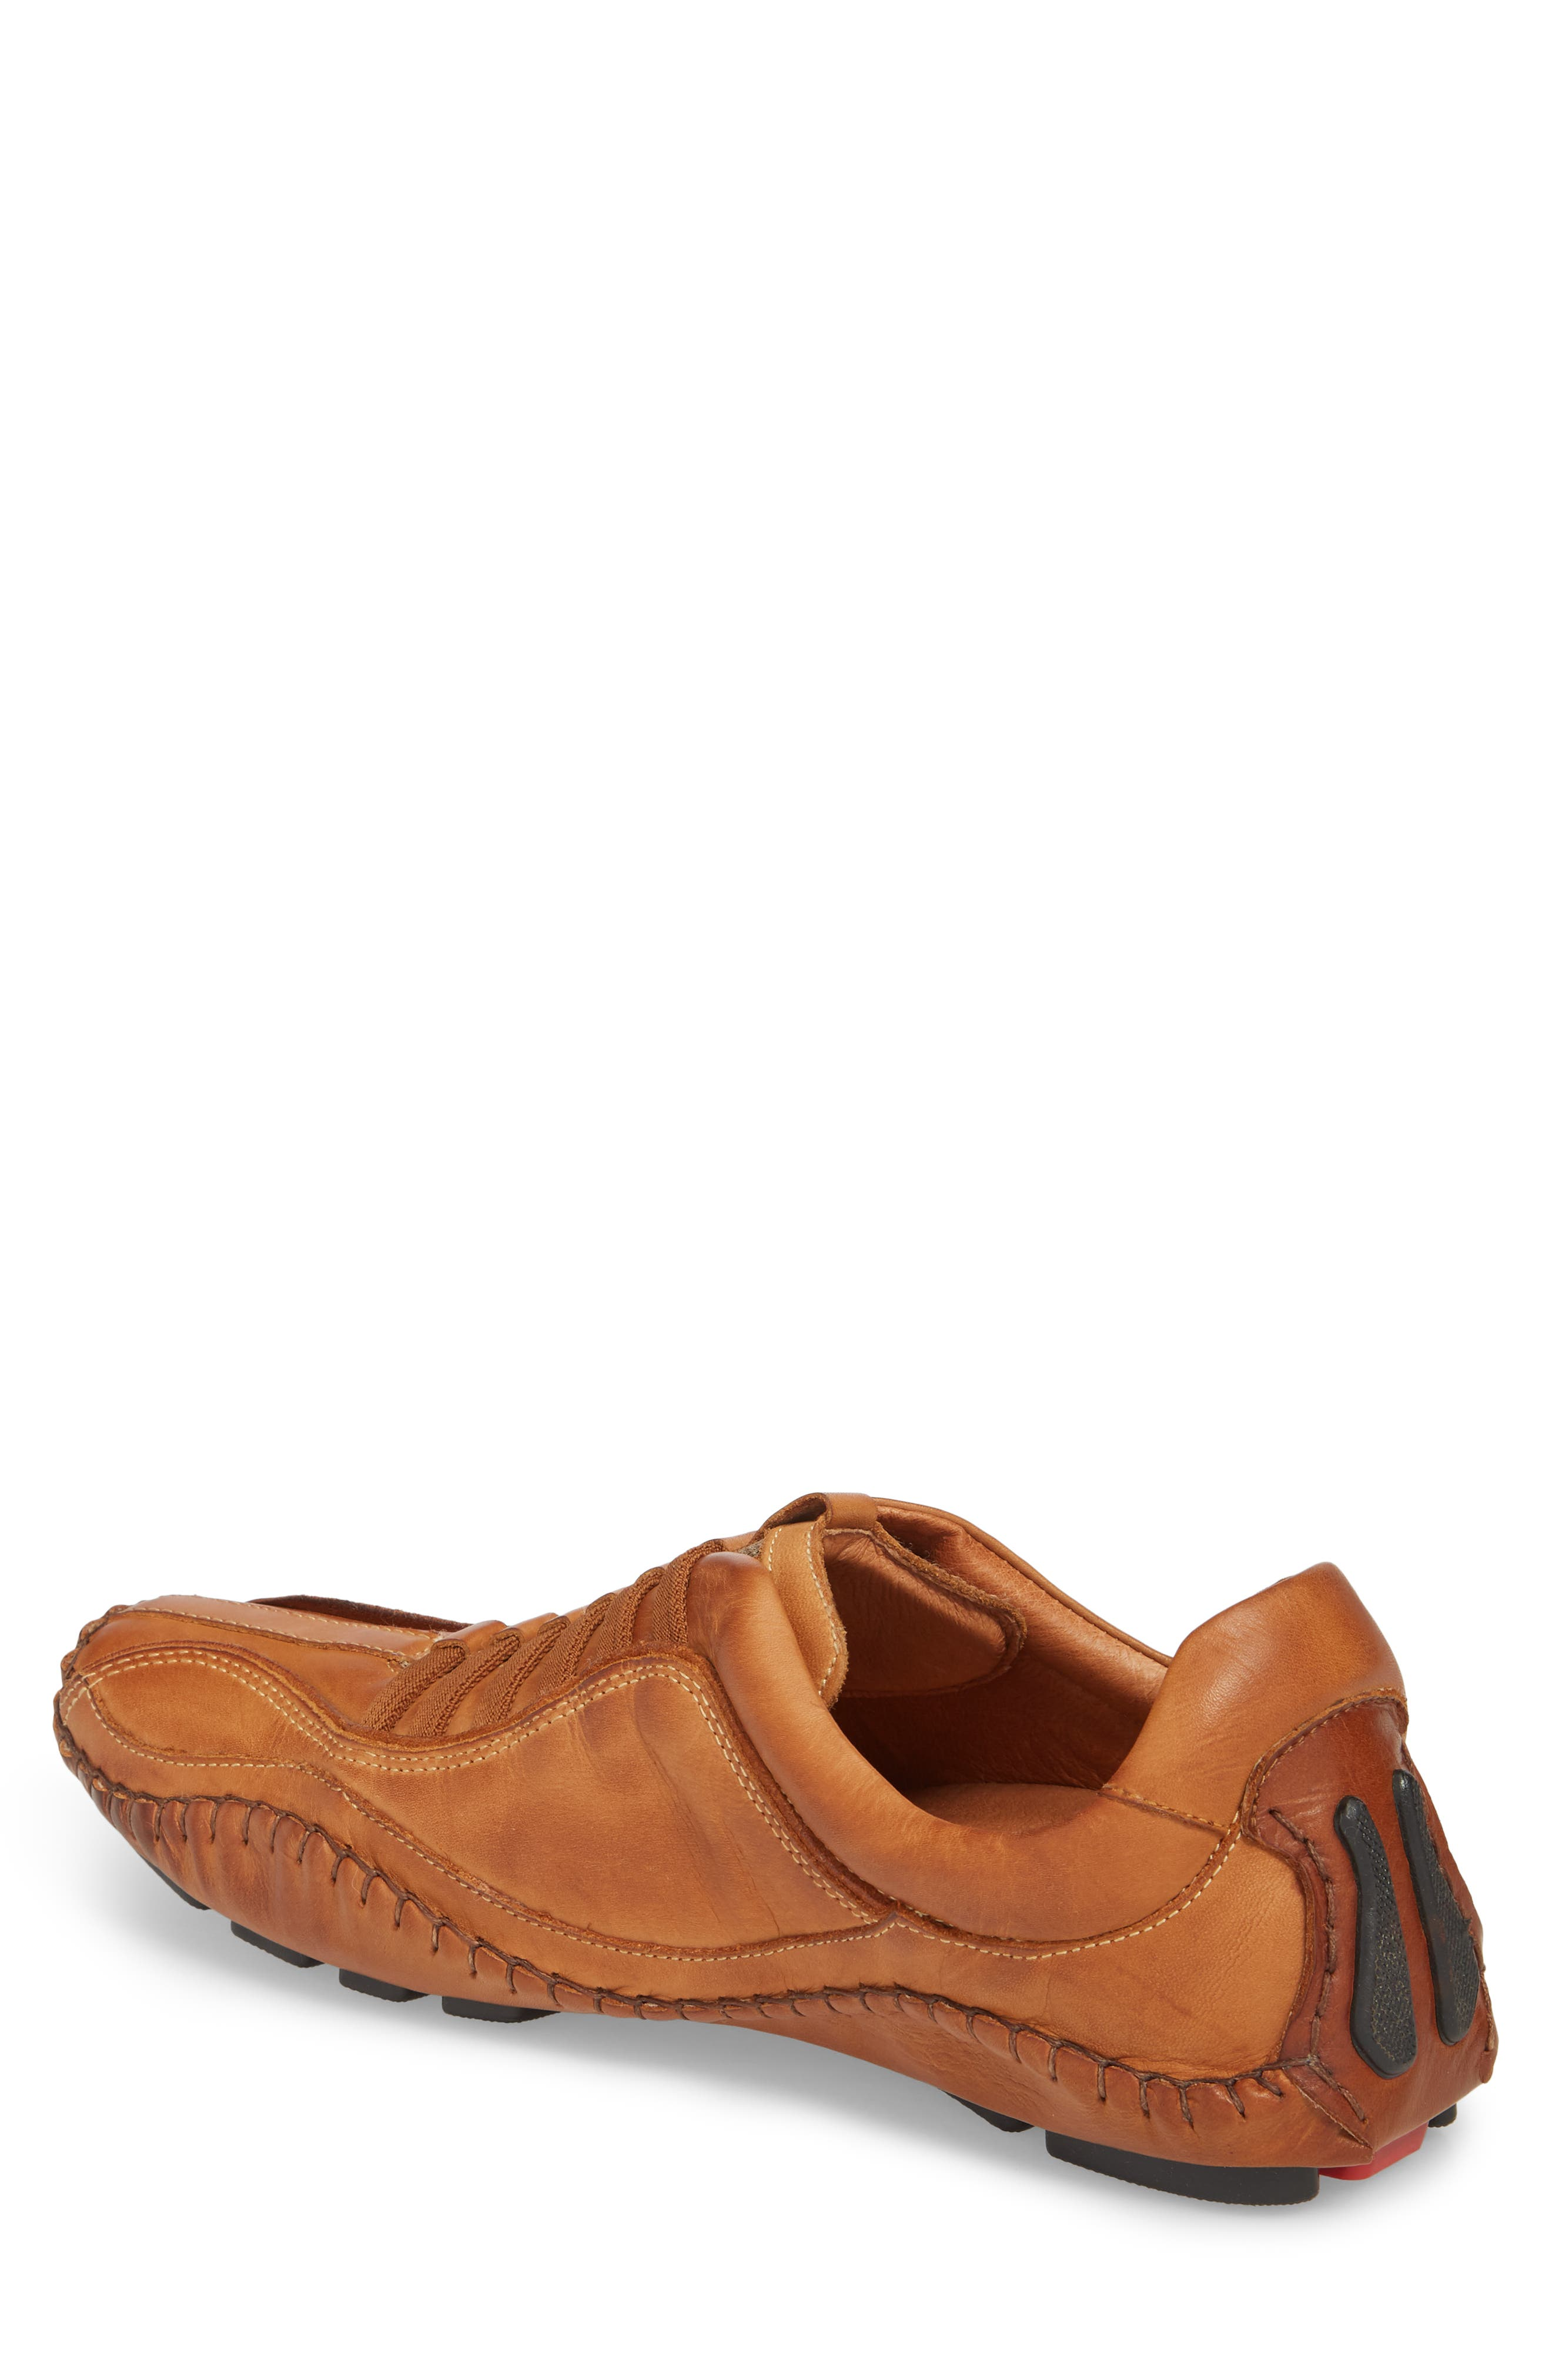 'Fuencarral' Driving Shoe,                             Alternate thumbnail 2, color,                             LIGHT BROWN